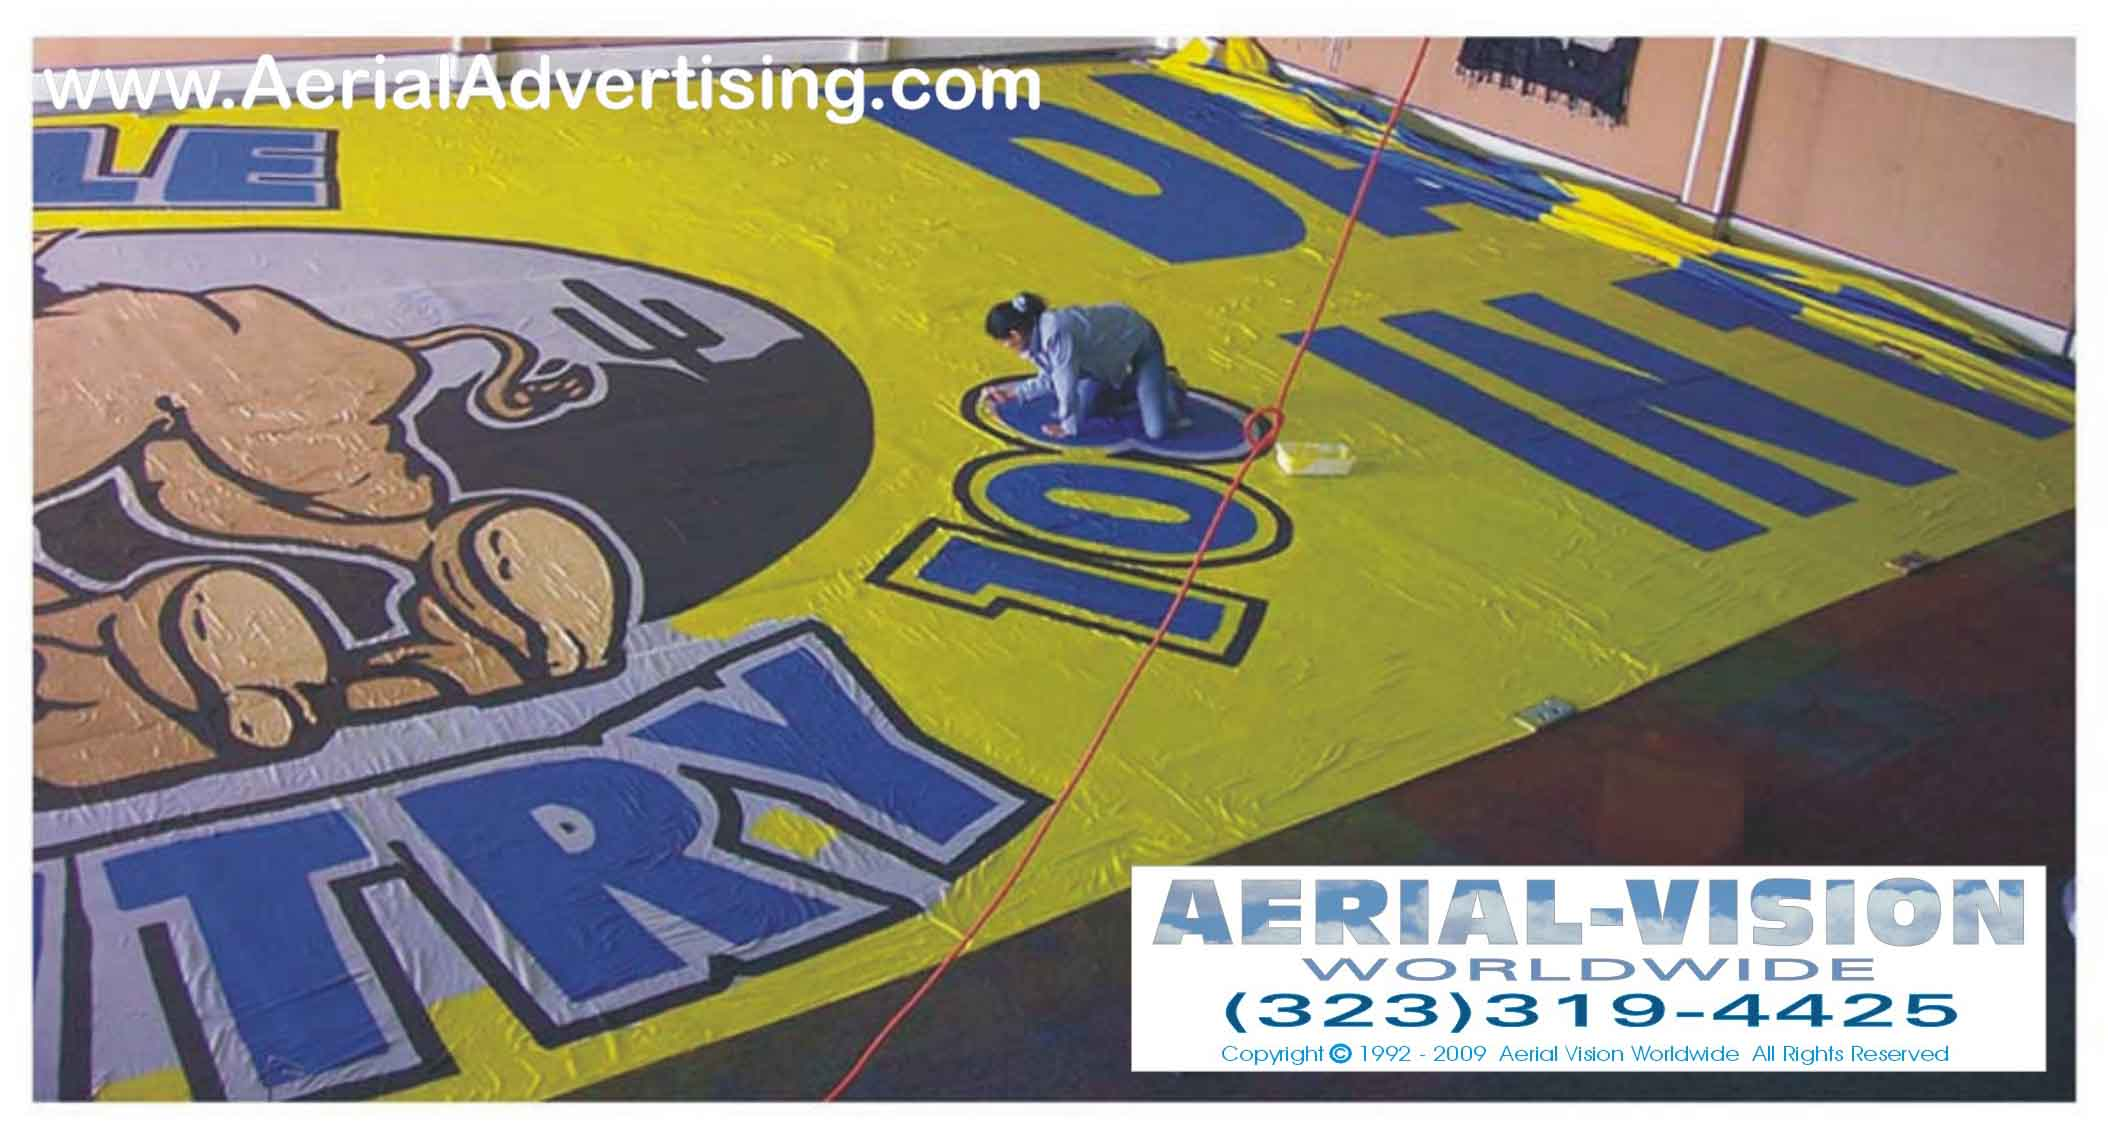 aerial_billboard_shop.jpg